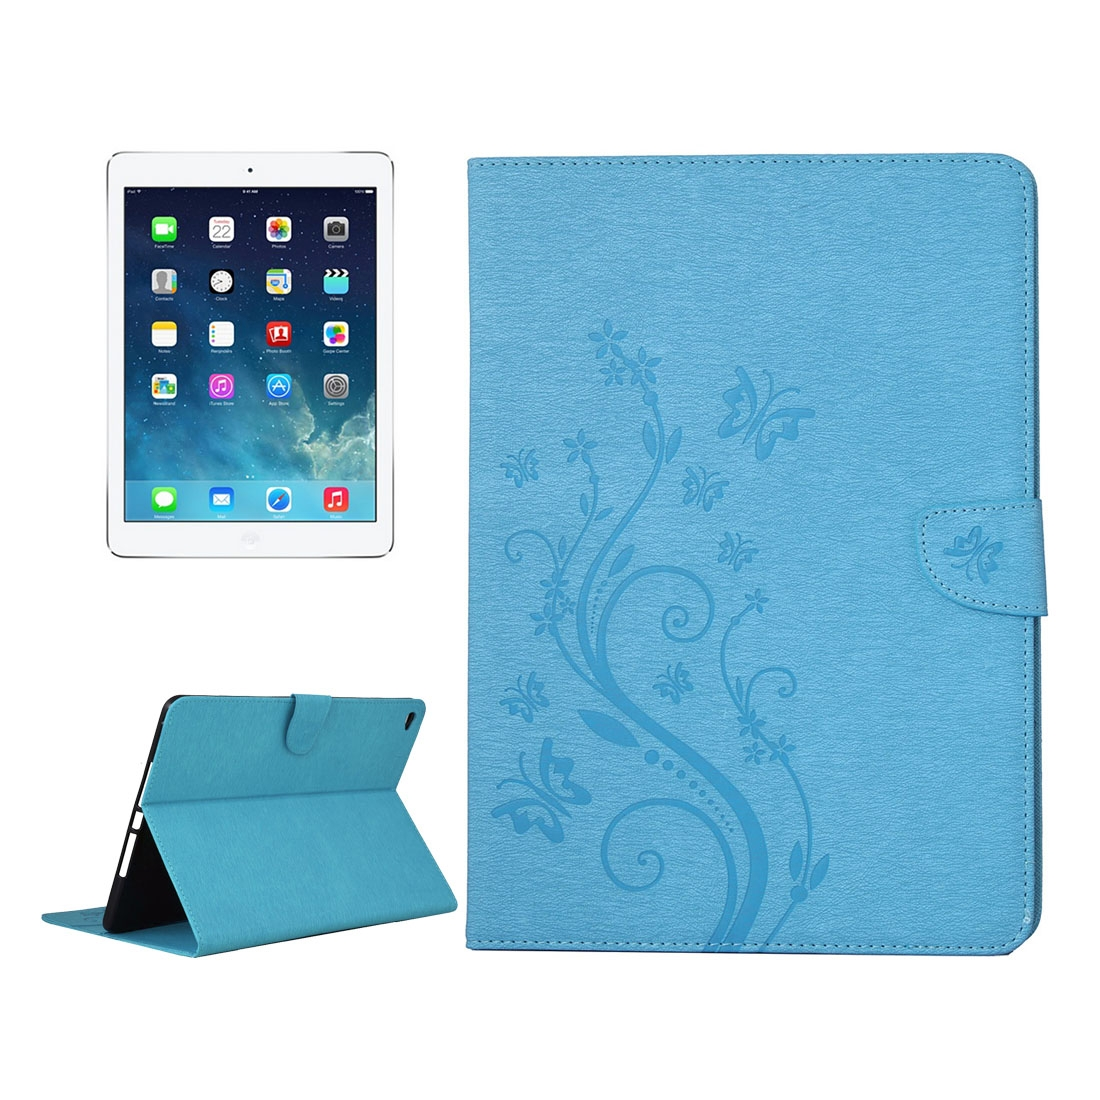 iPad Air 2 Case Floral Butterfly Leather Case with Magnetic Closure, Slim Profile (Blue)